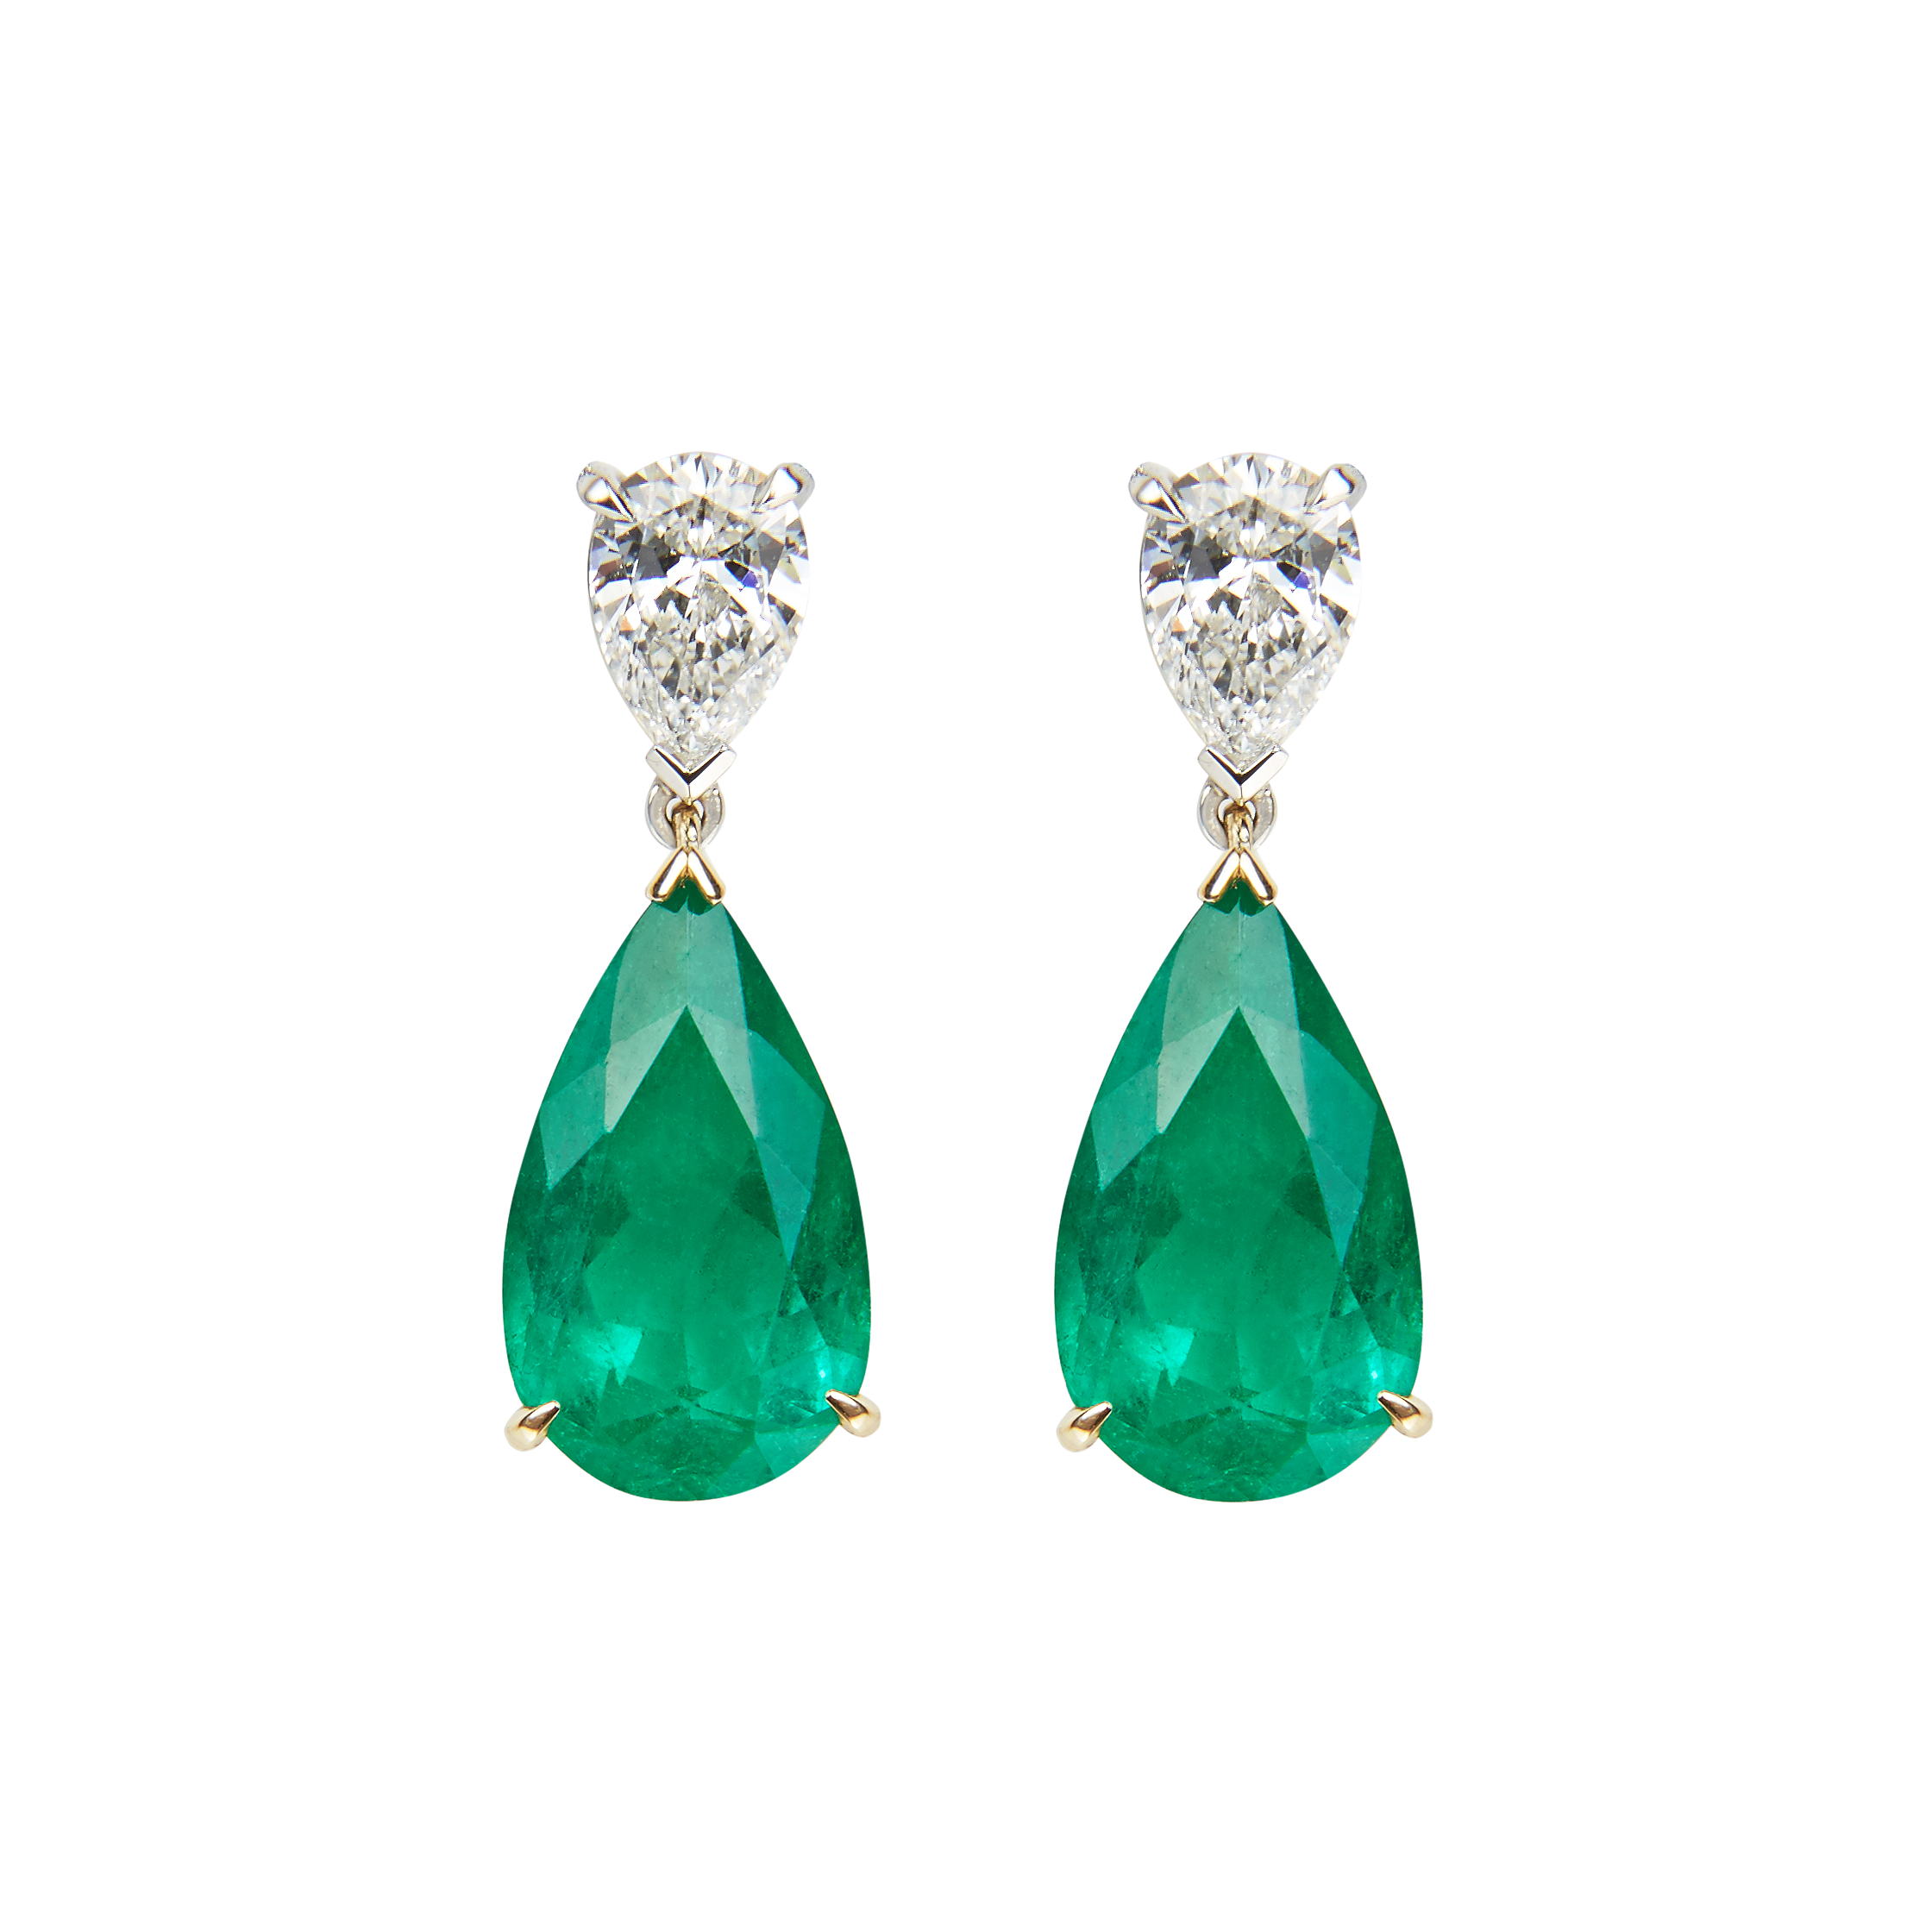 christina handcrafted emerald jewelry slice handmade earrings jewellery shop jervey